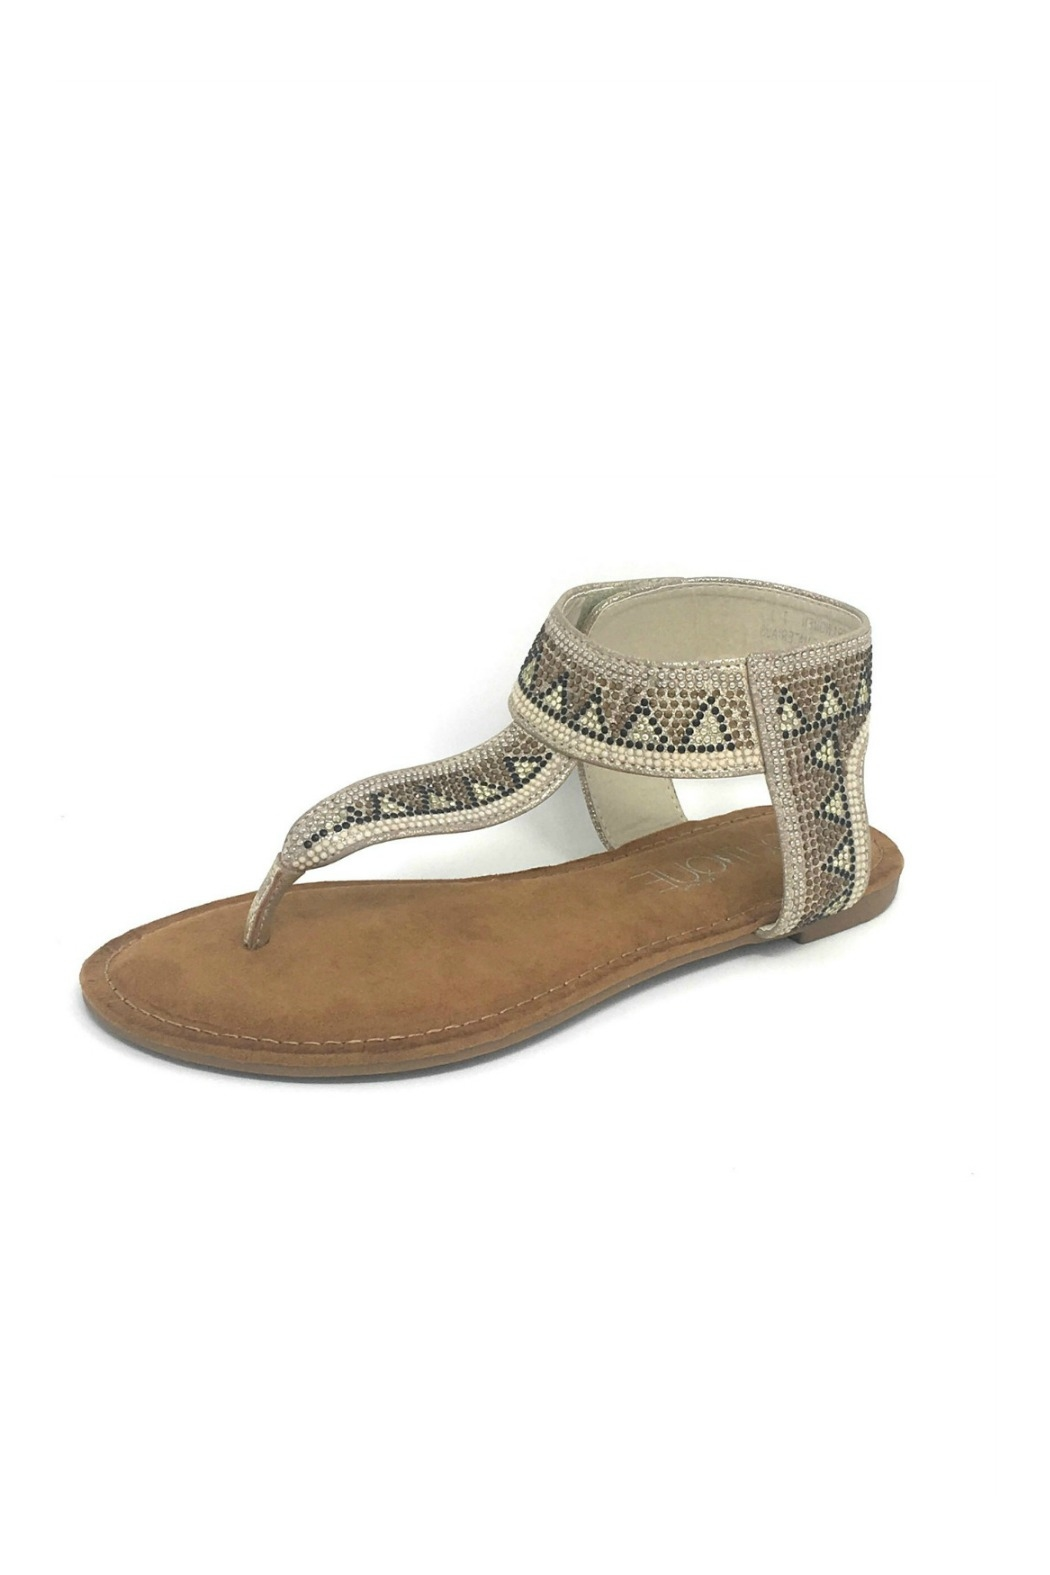 9daa323891bb Corky s Shoes Nora Sandal from Kansas by Eccentricity — Shoptiques